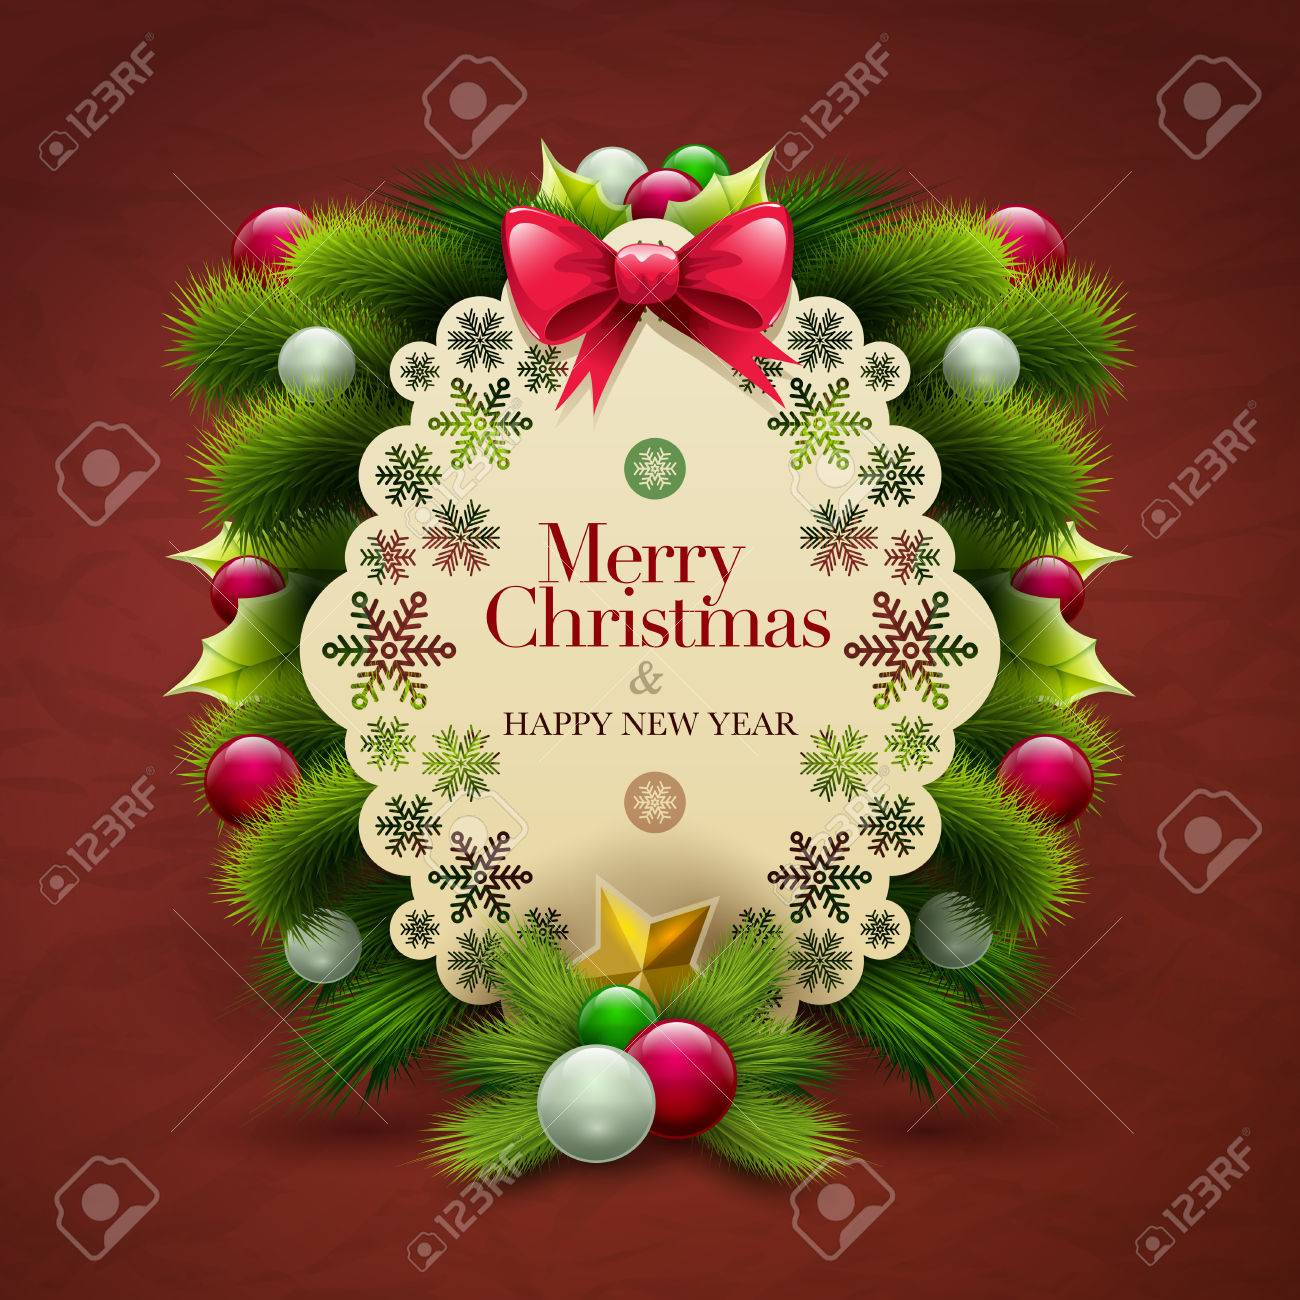 Christmas Invitation Message Card With Ornaments Vector Design